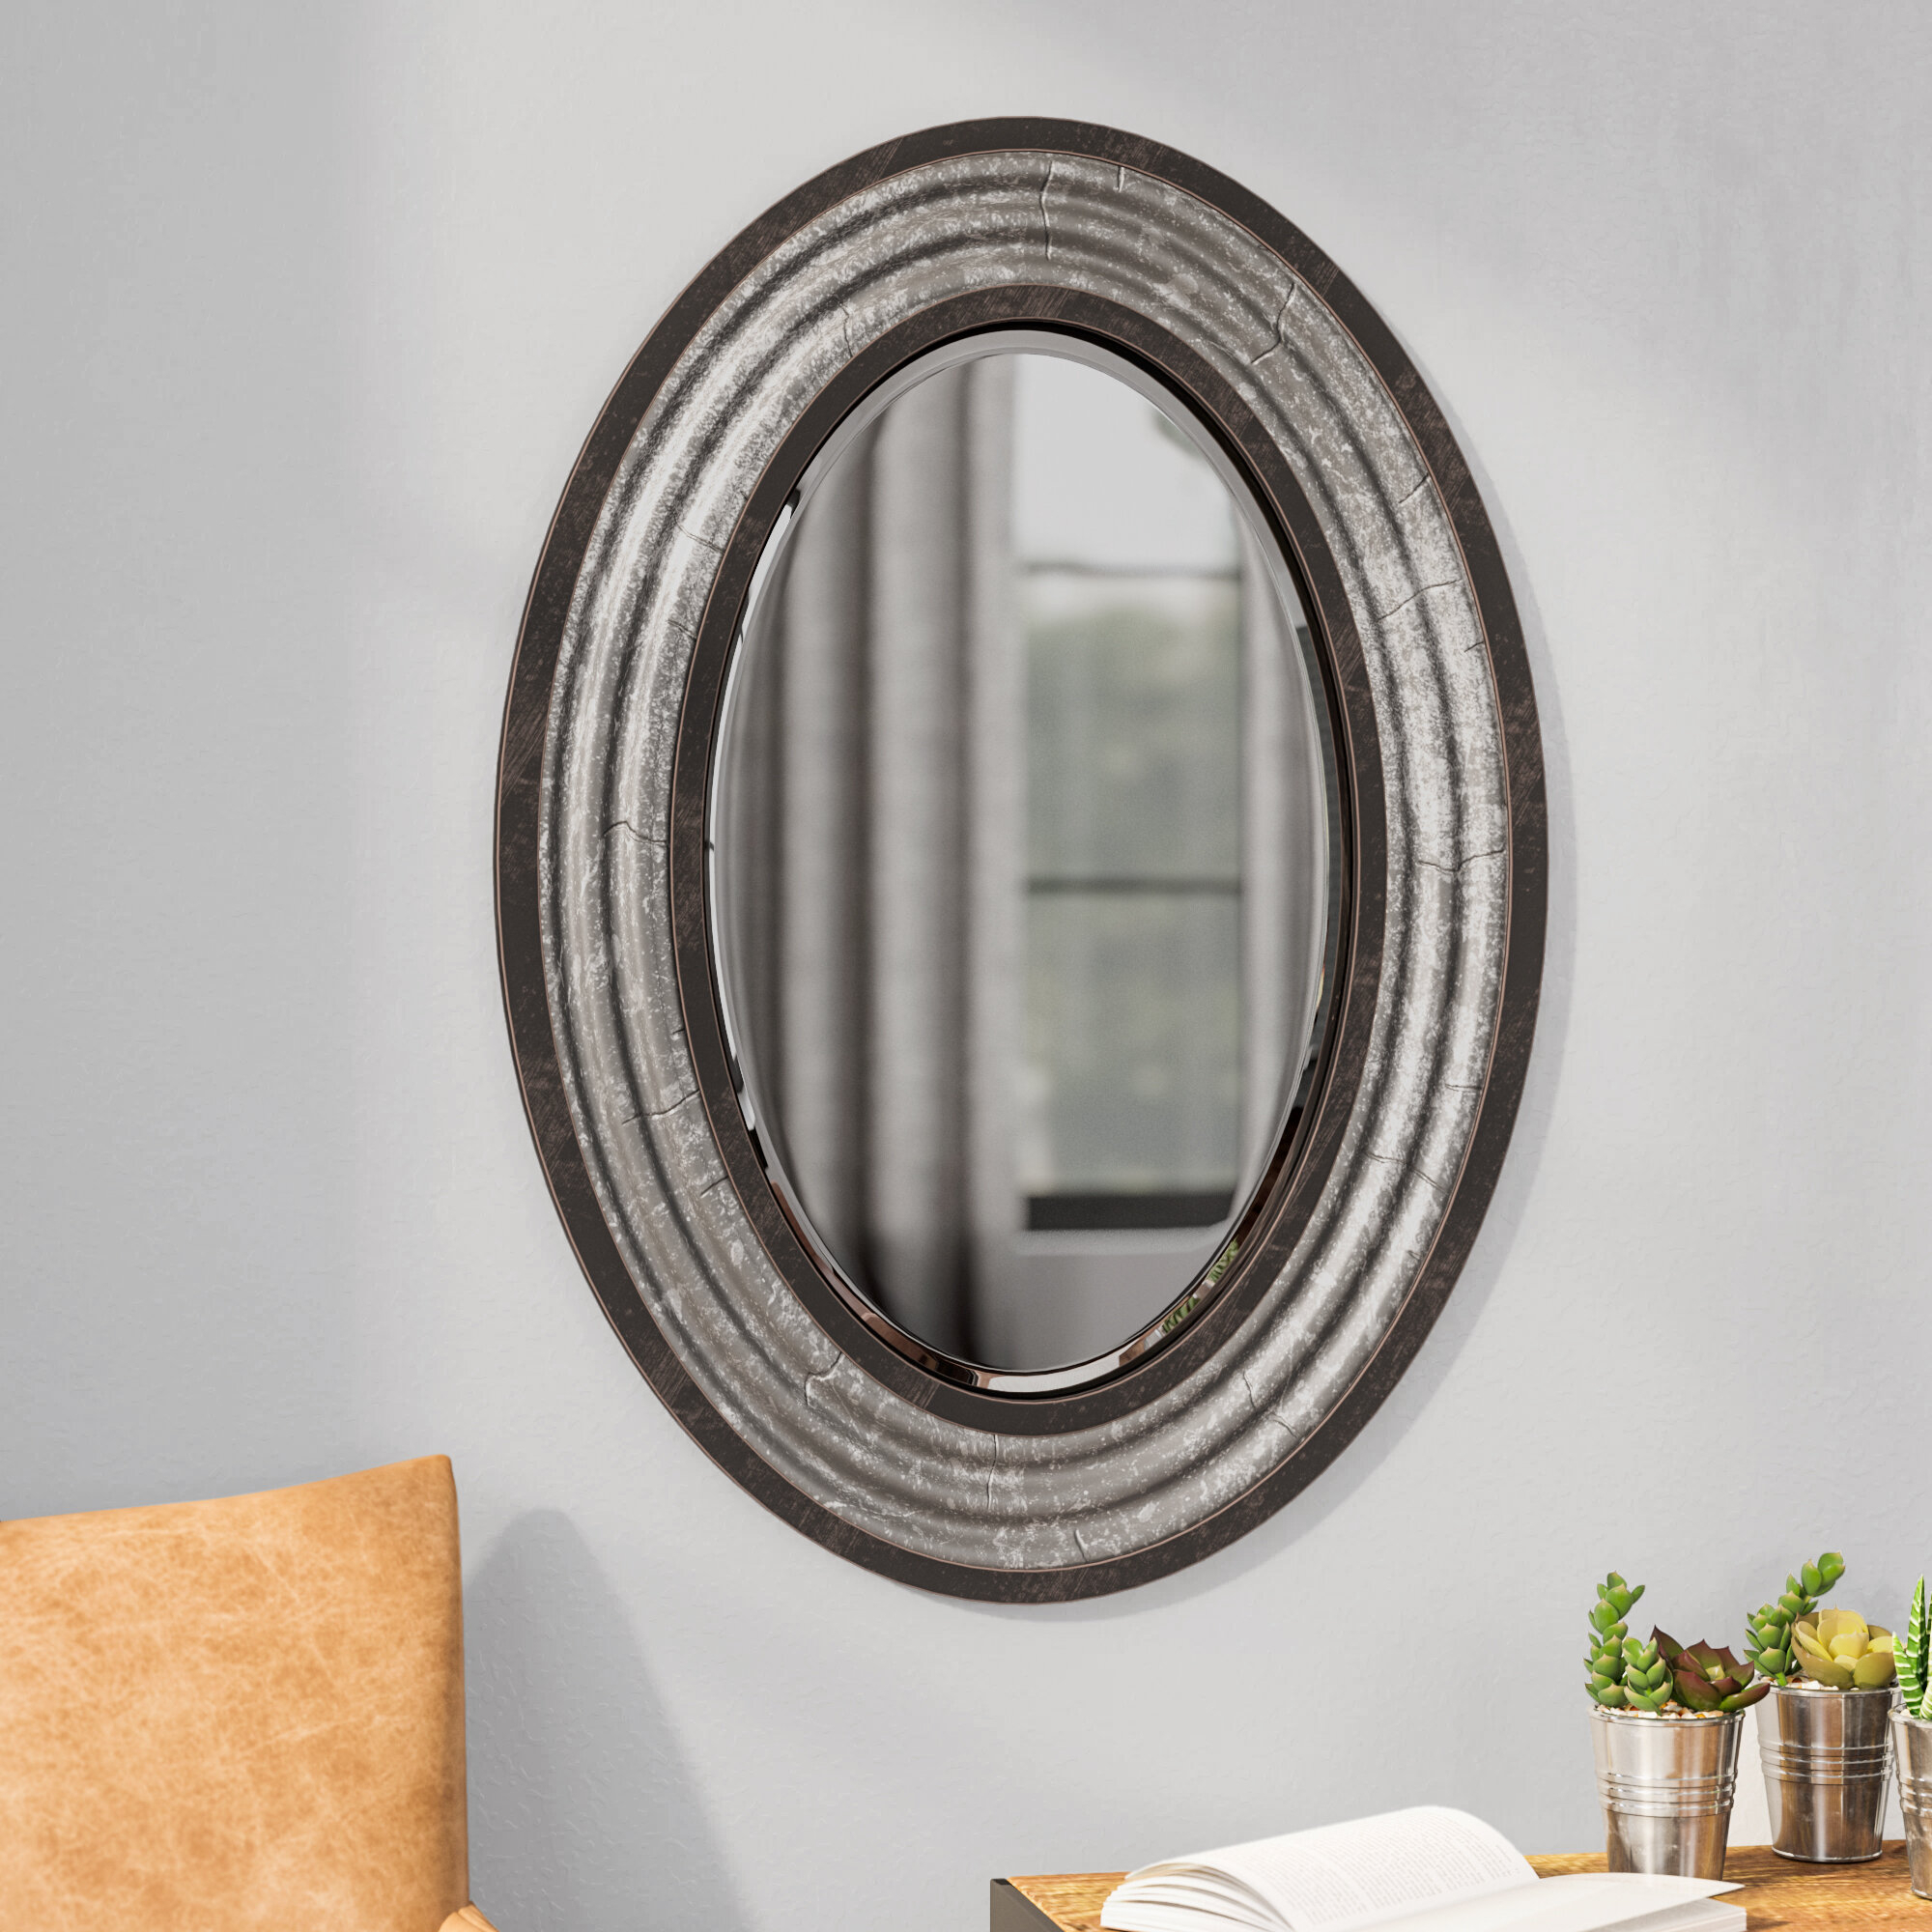 Modern & Contemporary Beveled Wall Mirror Intended For Industrial Modern & Contemporary Wall Mirrors (View 3 of 20)